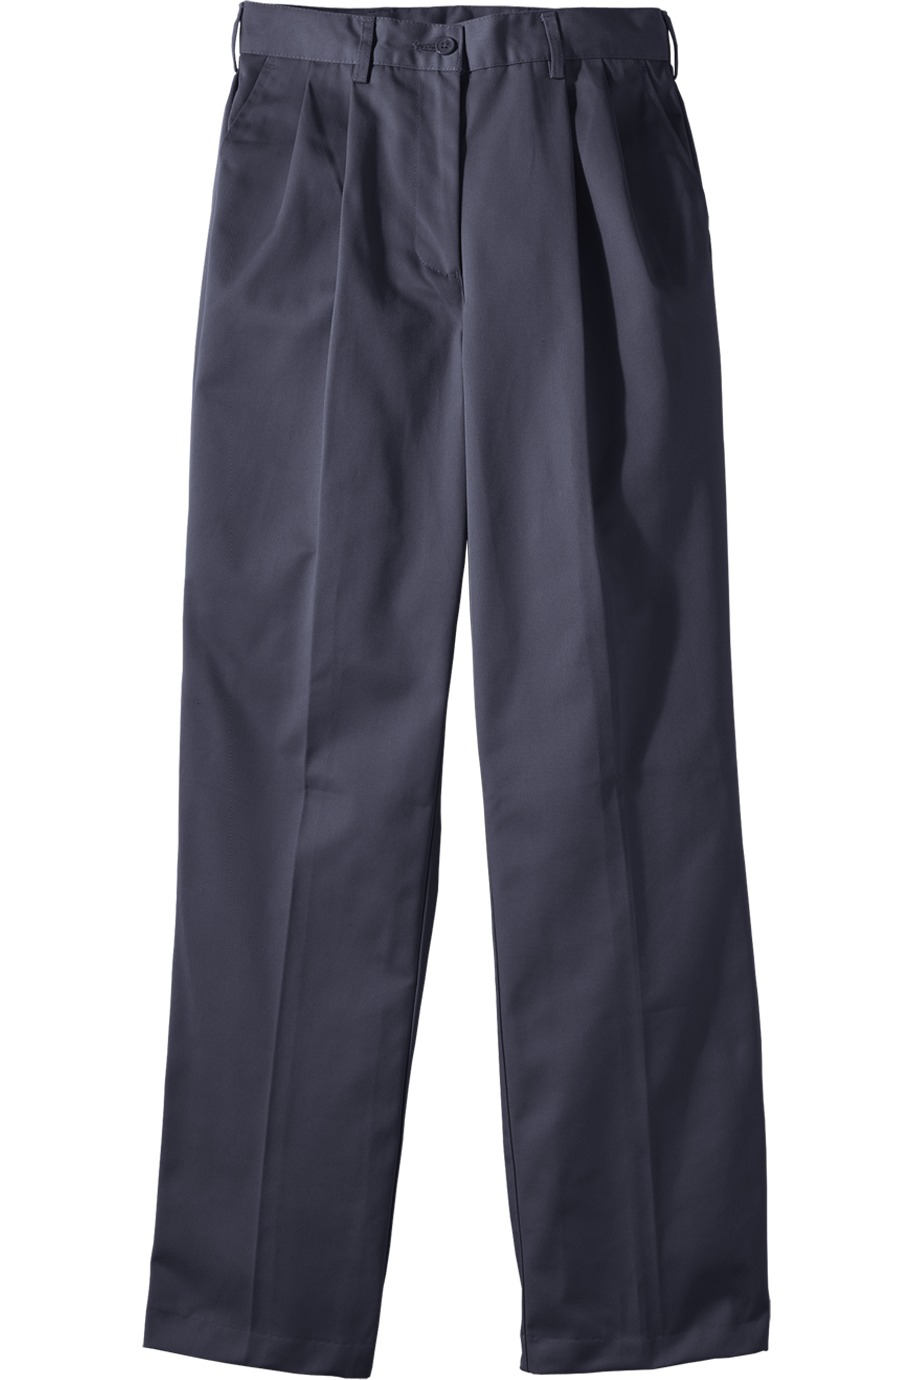 Edwards Garment 8667 - Women's Utility Pleated Pant